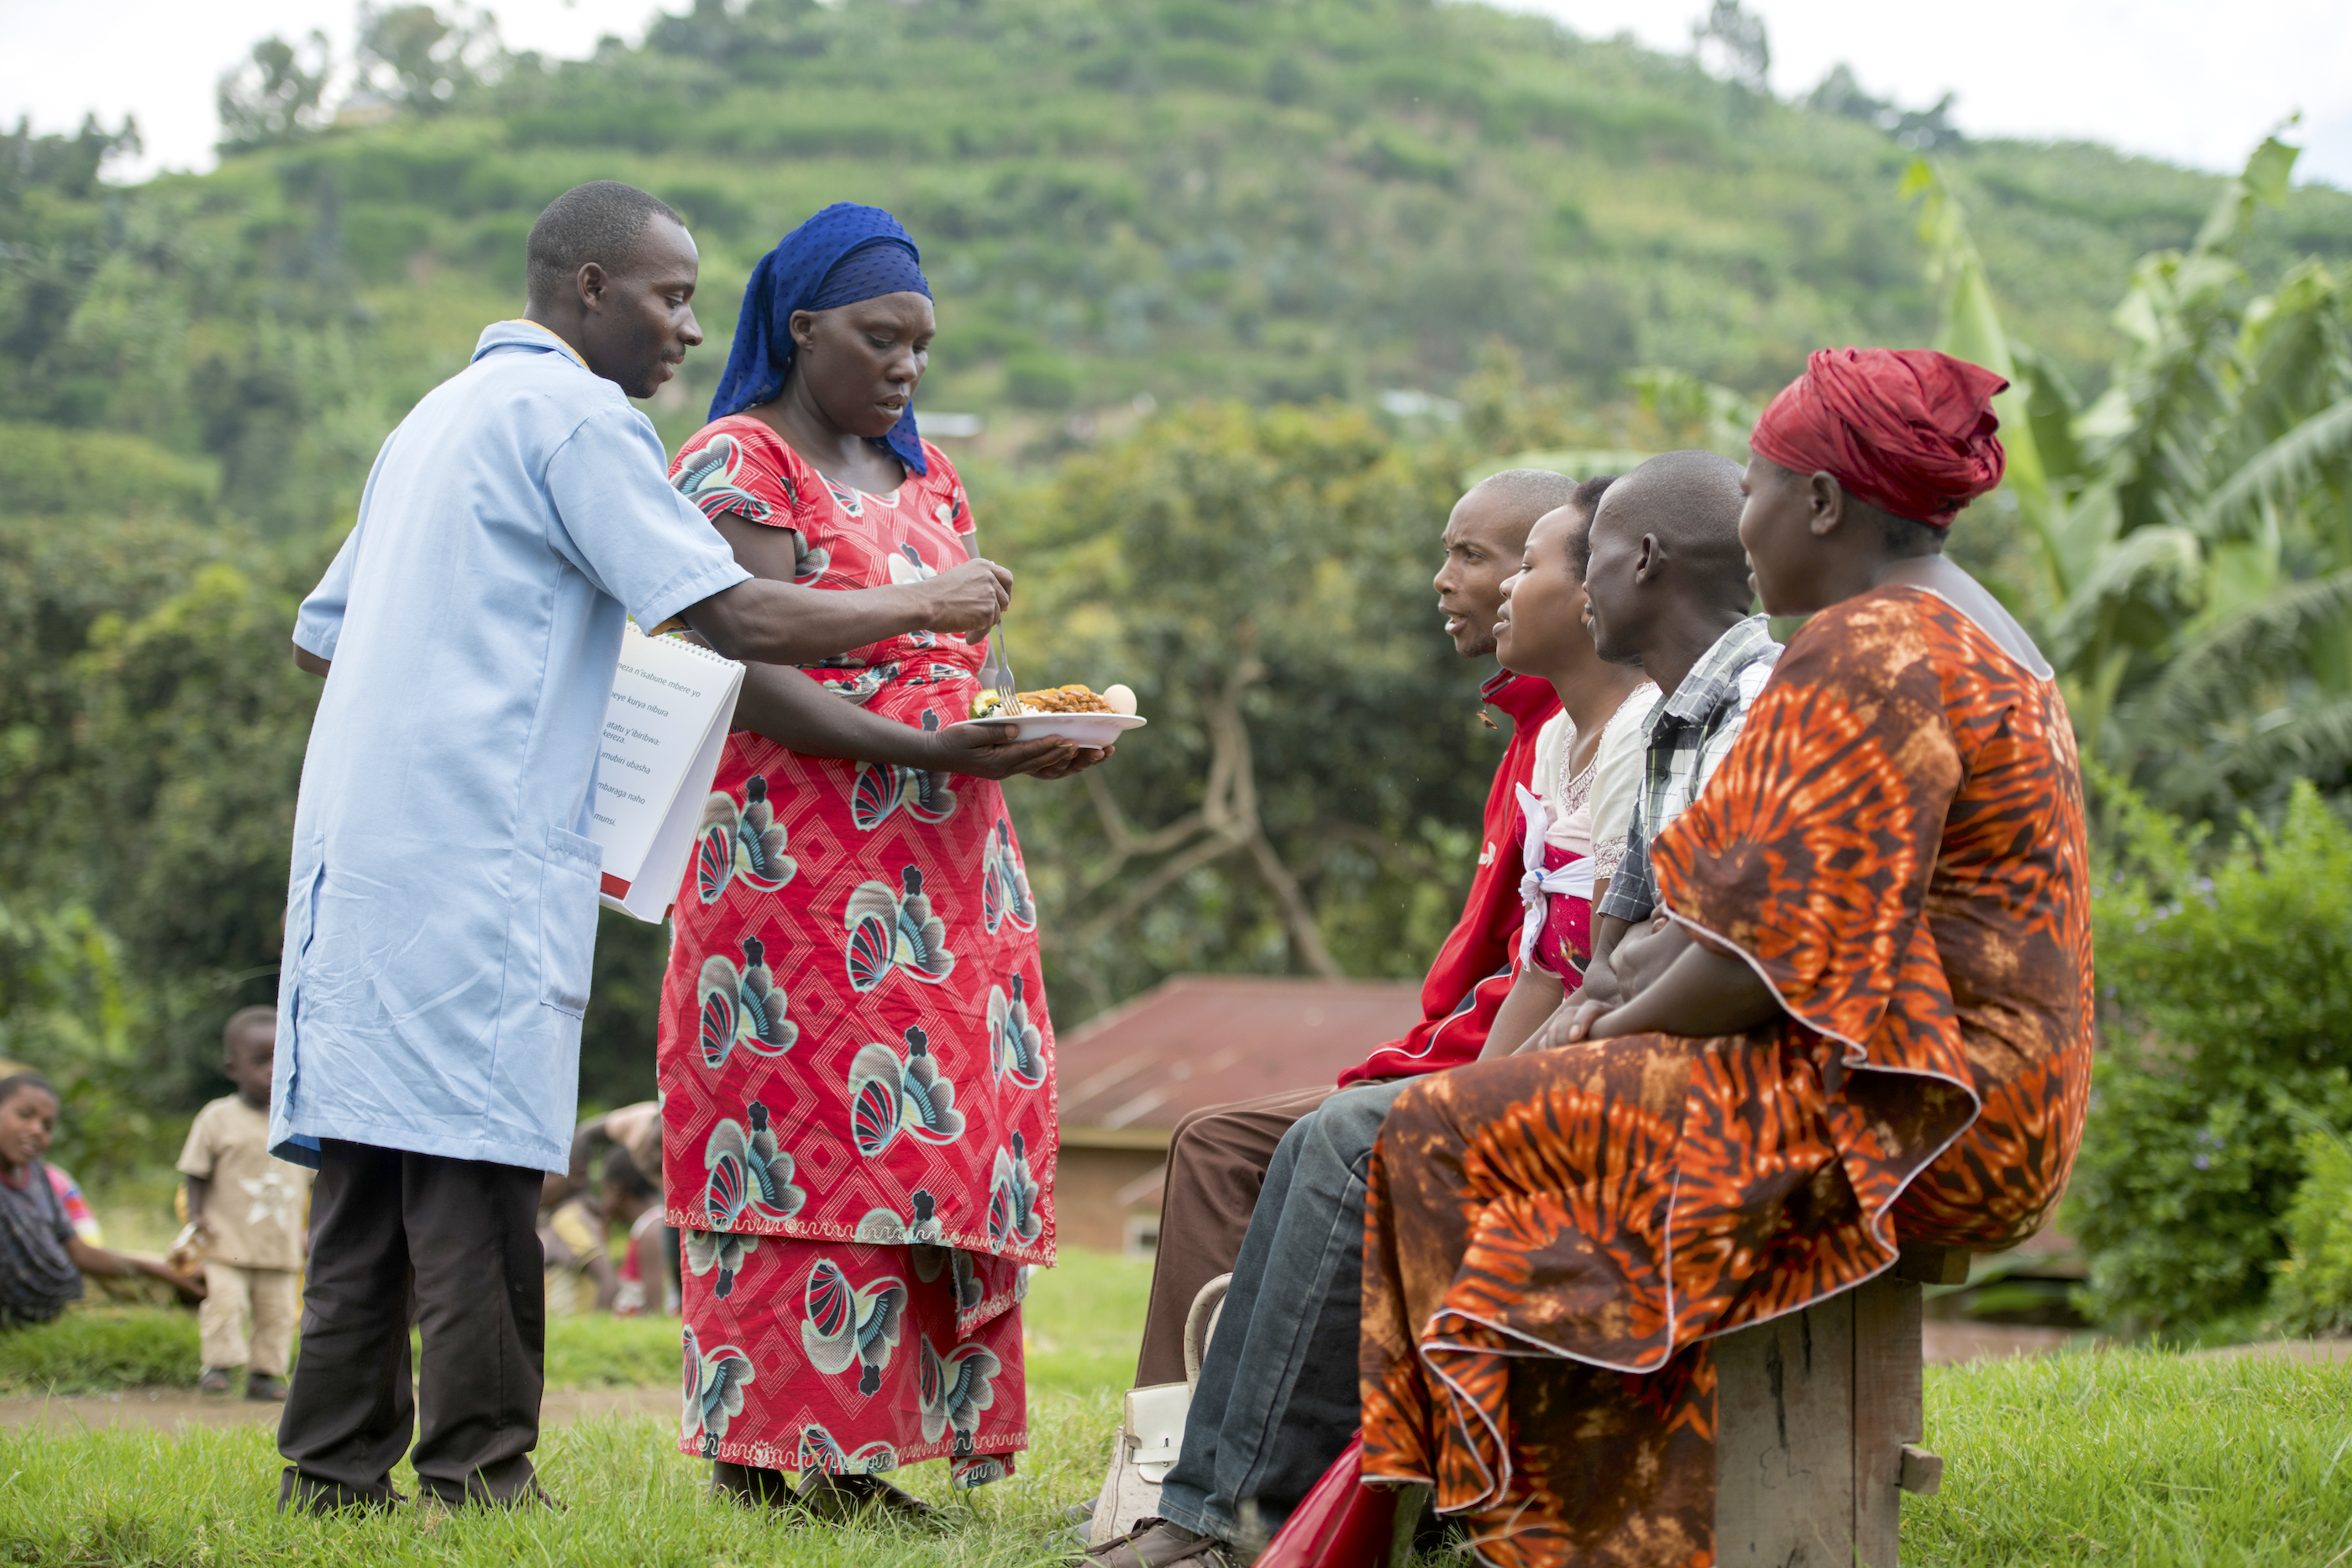 A community health worker in Rwanda talks to people on hygiene and the importance of a balanced diet, as part of the SUSTAIN project. (Photo: CIP)